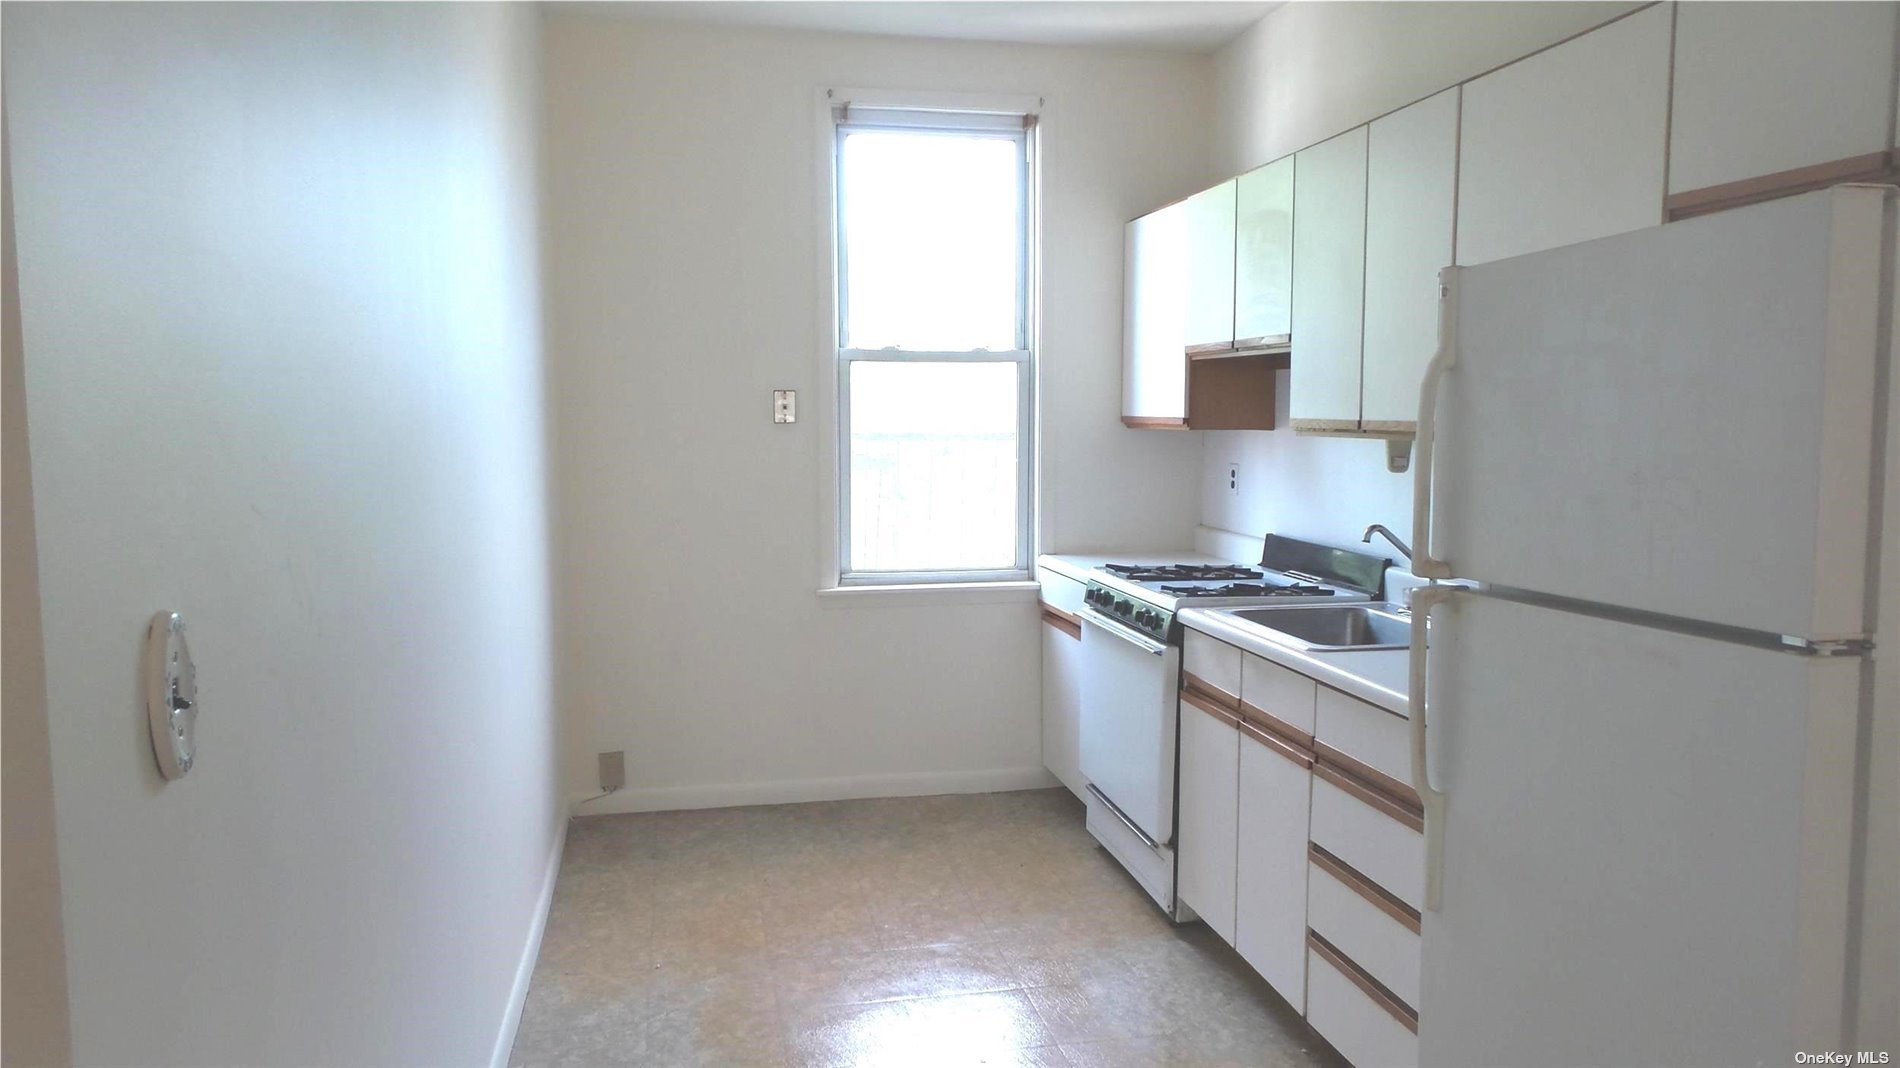 6 Family Building 125th Street  Queens, NY 11356, MLS-3330337-4